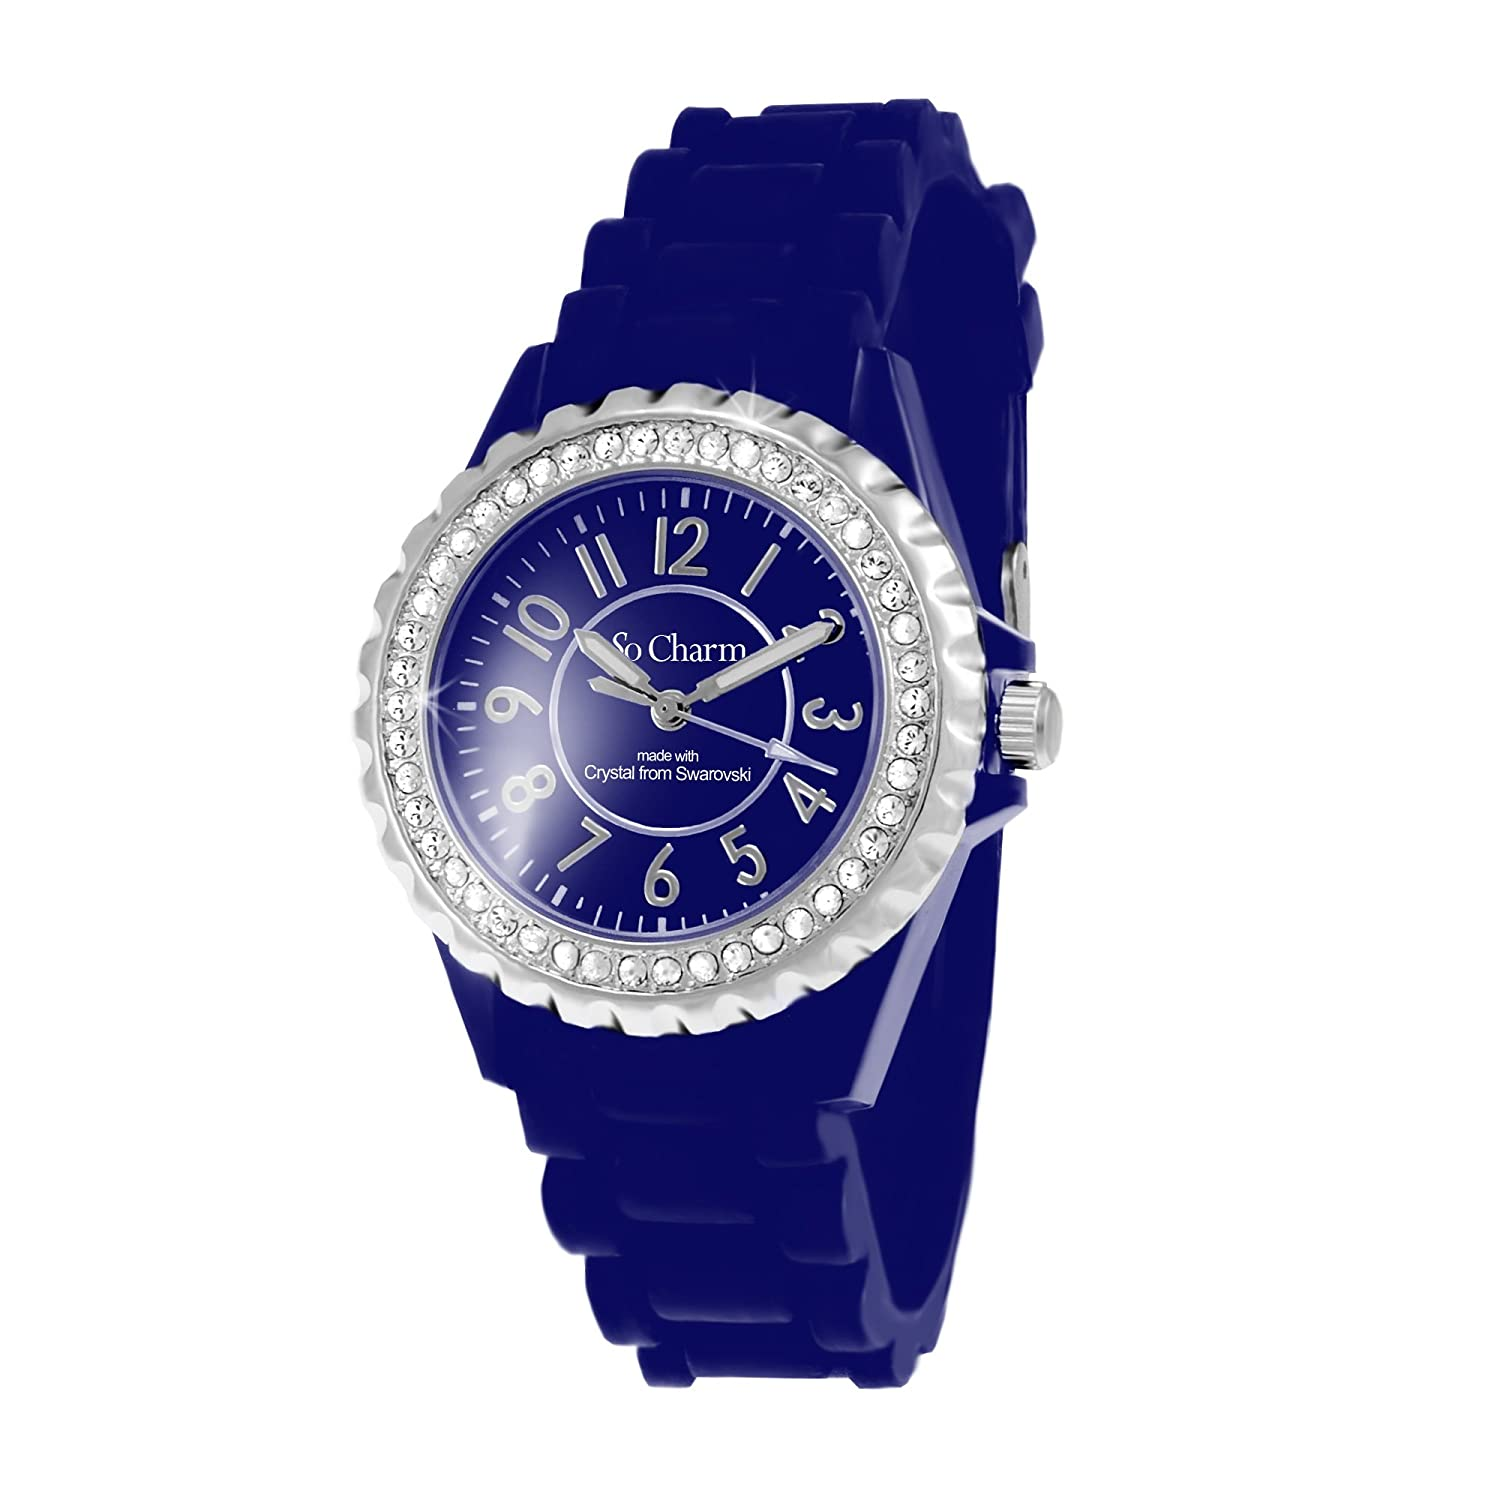 Zeigt Damen Armband Silikon Blau SO Charm Made with Crystal FROM Swarovski Elements